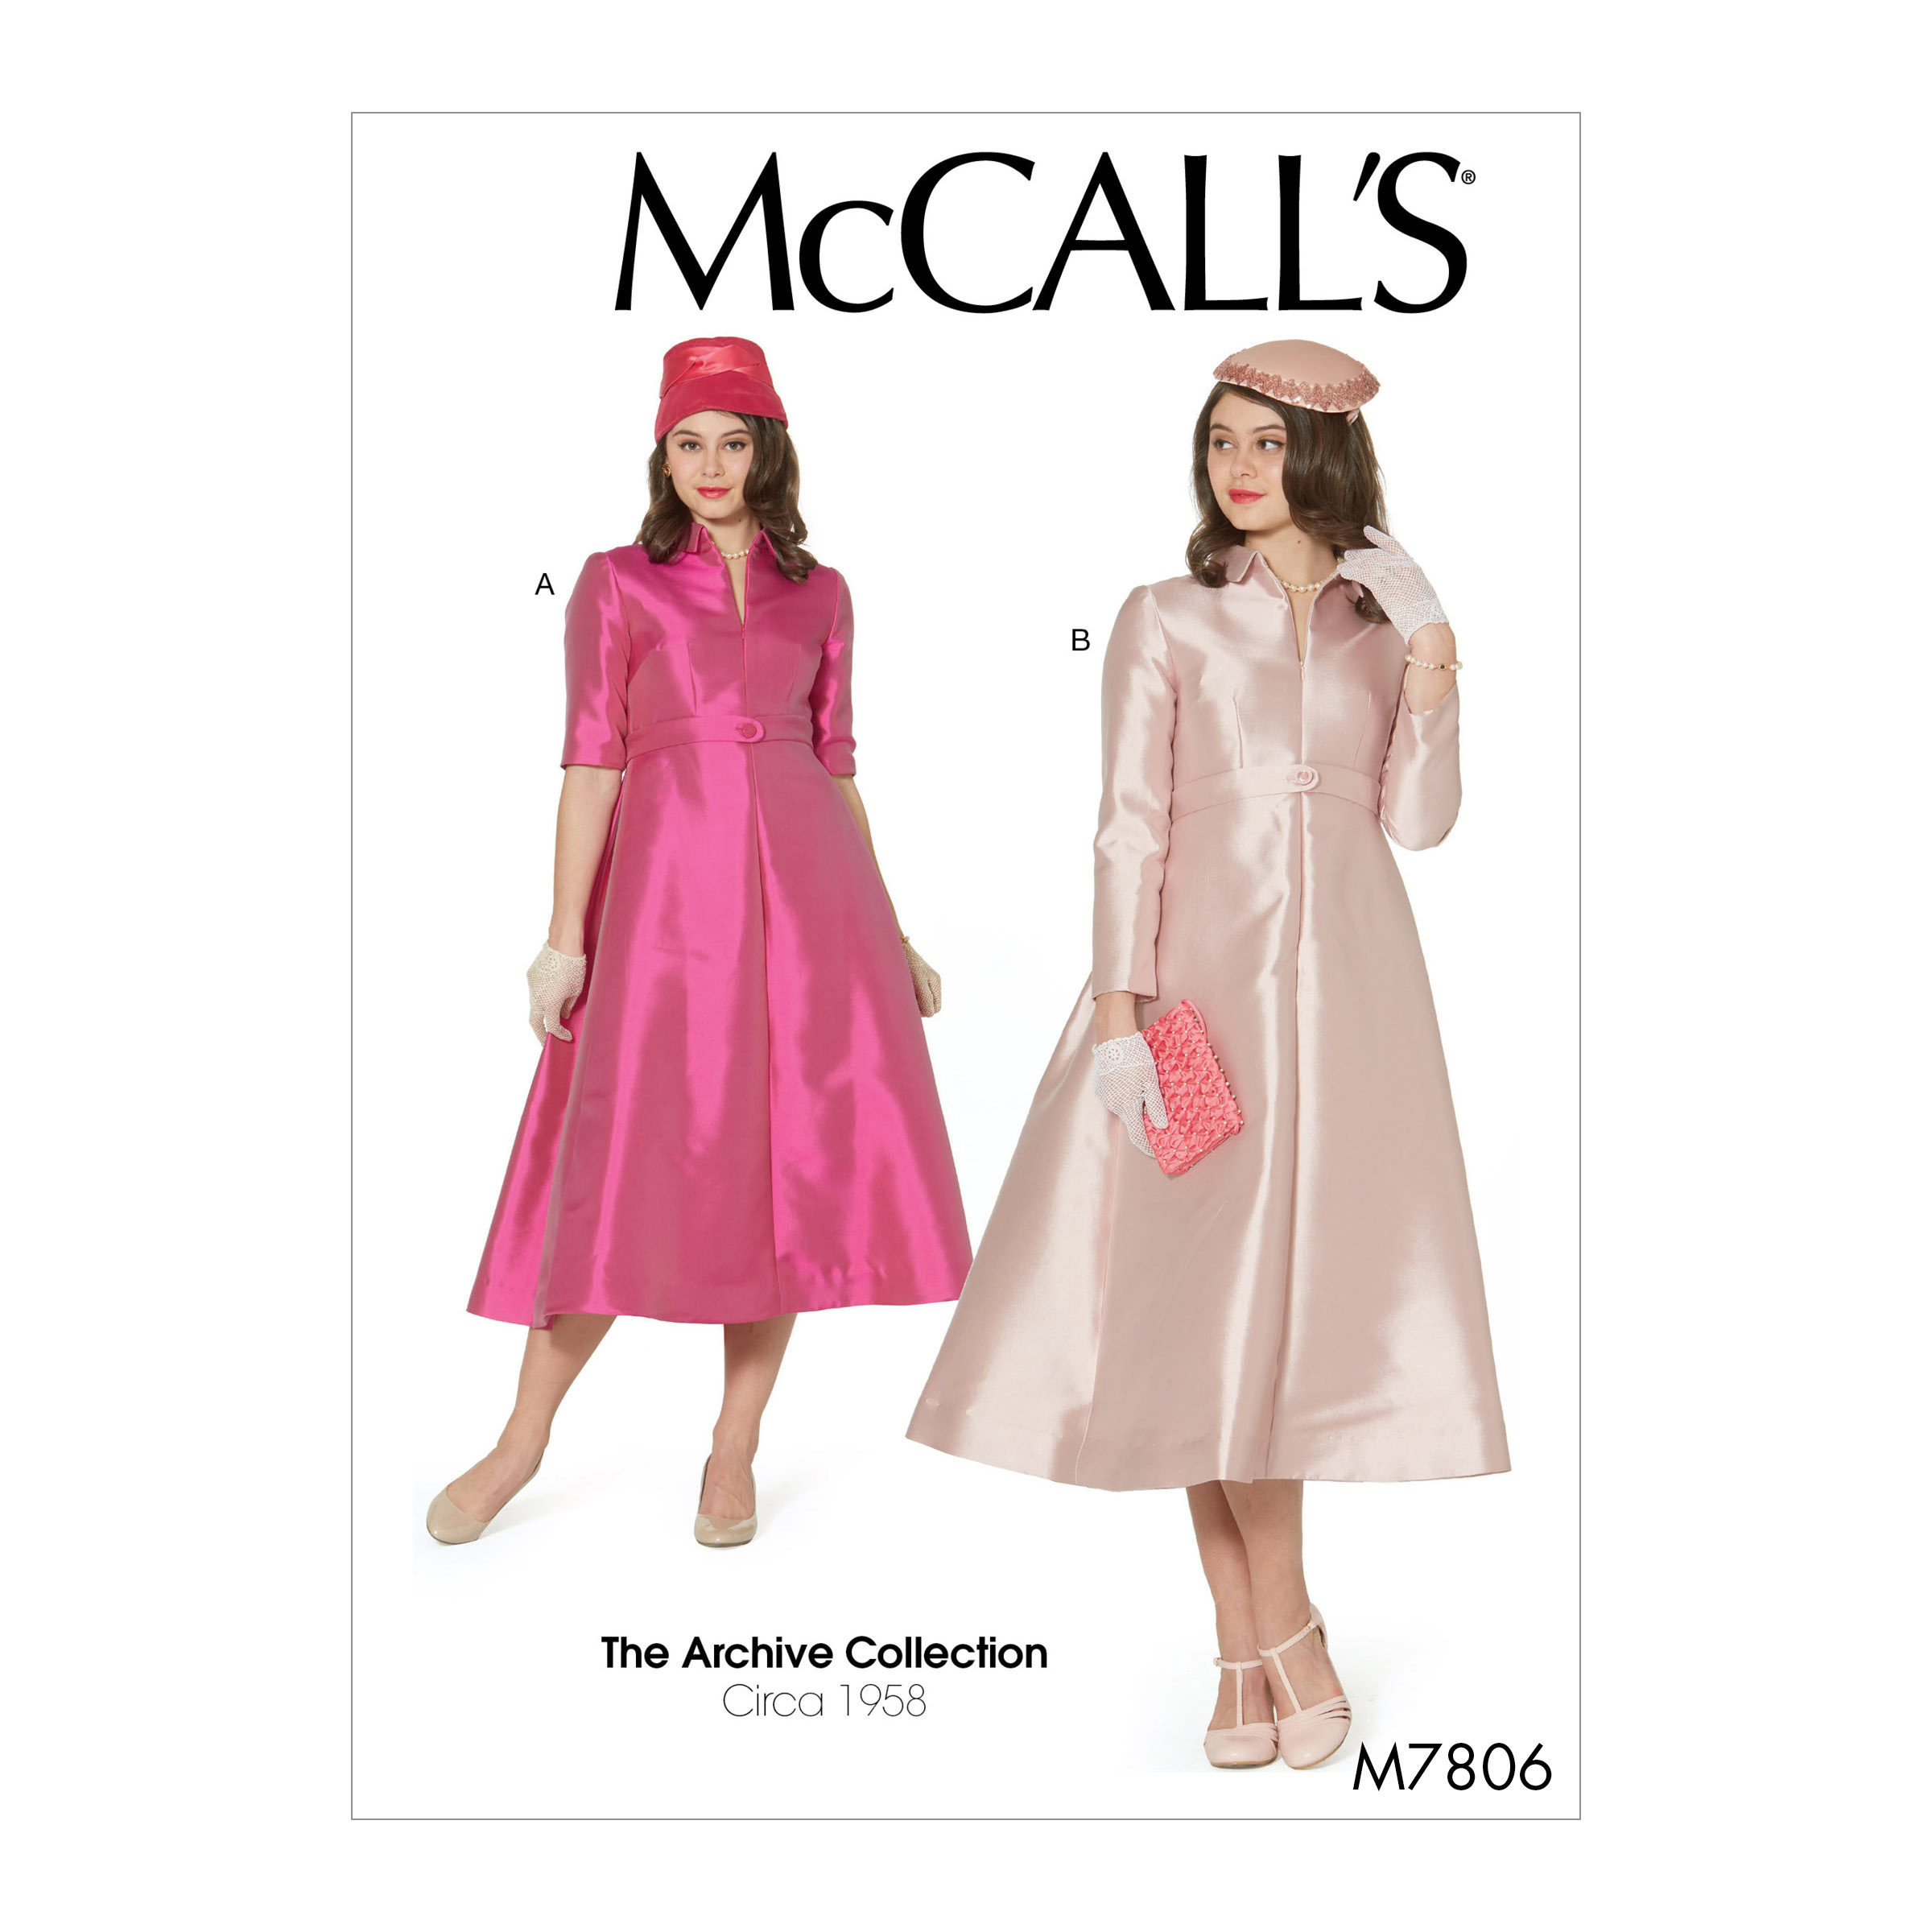 1950s Sewing Patterns | Swing and Wiggle Dresses, Skirts 1958 McCalls M7806 The Archive Collection Misses Dresses E5 Sizes 14-22 $13.17 AT vintagedancer.com